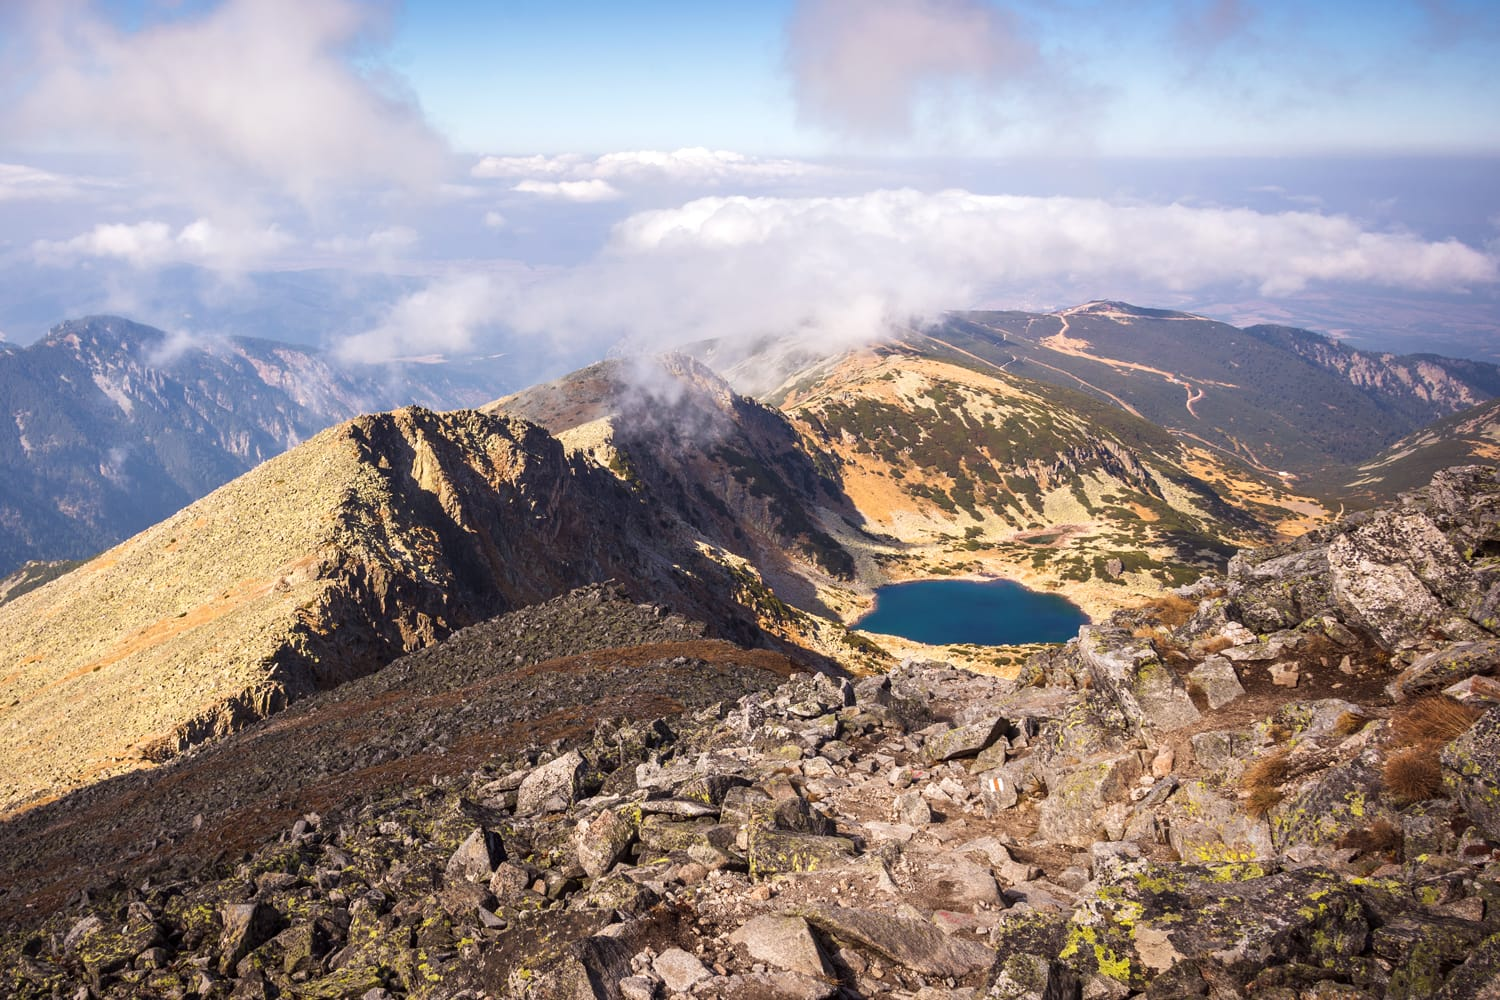 """Breathtaking view of Rila mountain in Bulgaria with highest peak on Balkan """"Musala"""" at 2925m. Rila lakes and surrounding with good weather."""